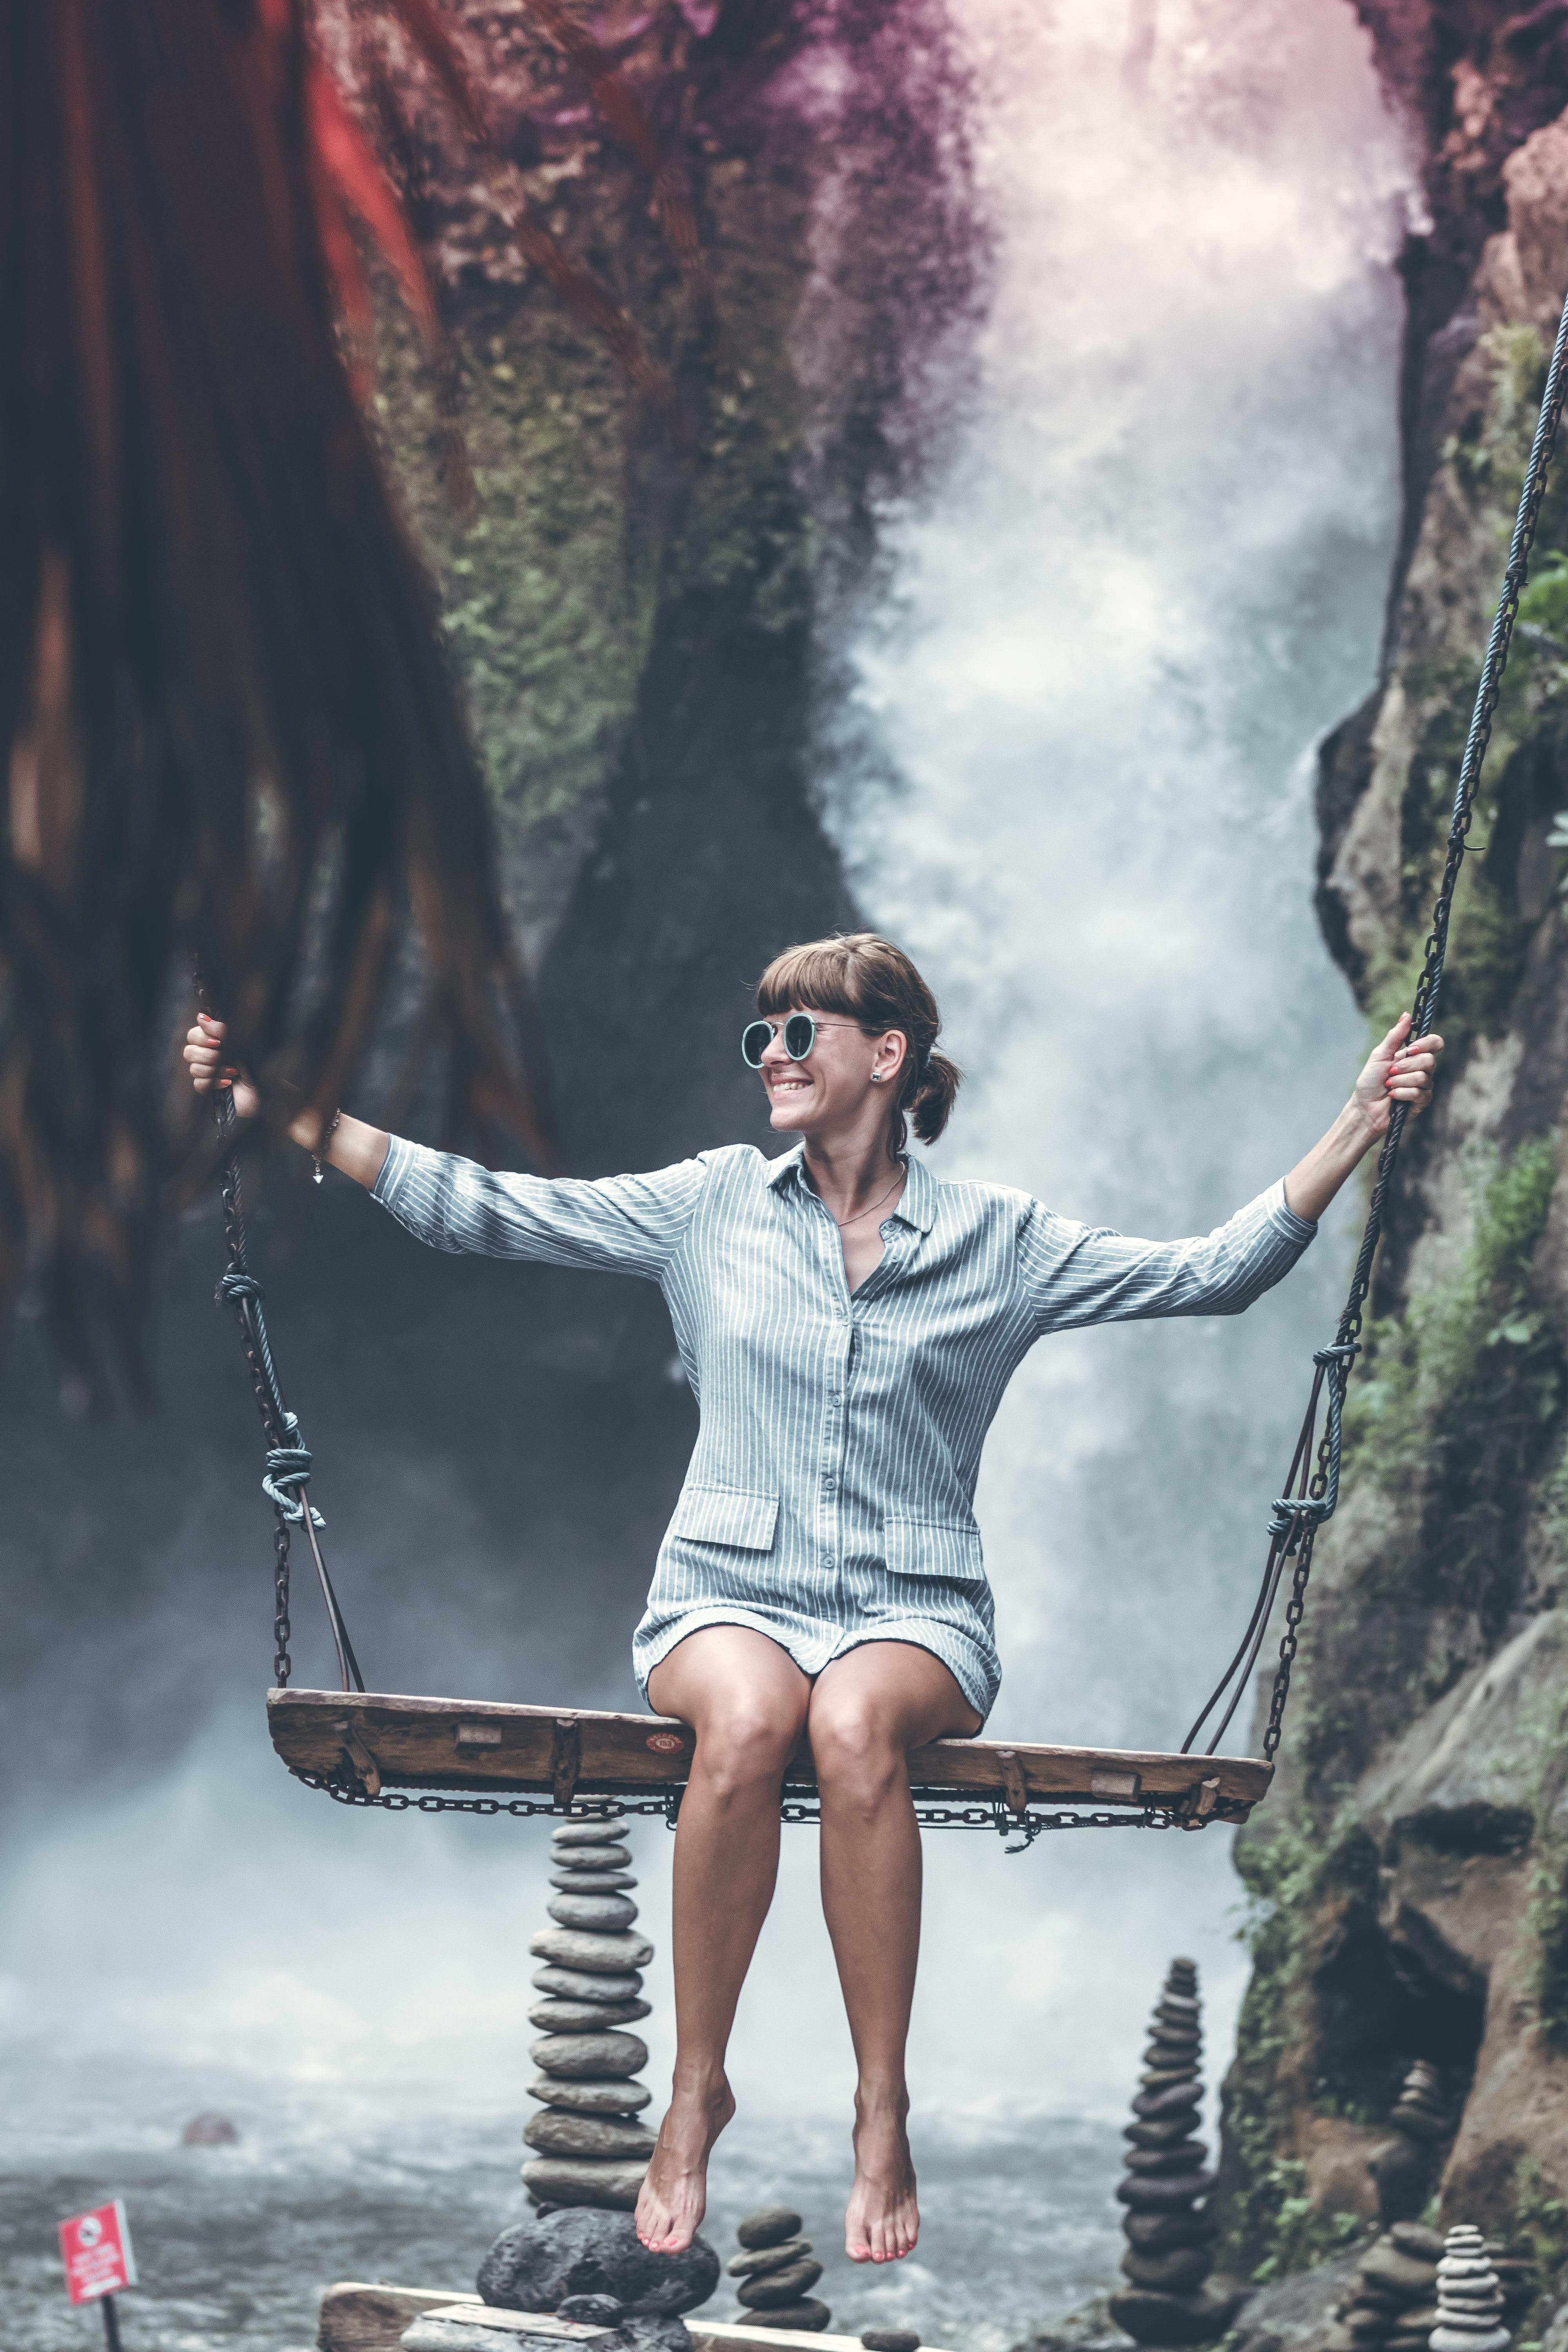 Woman Sitting on Swing Chair With Waterfalls Background